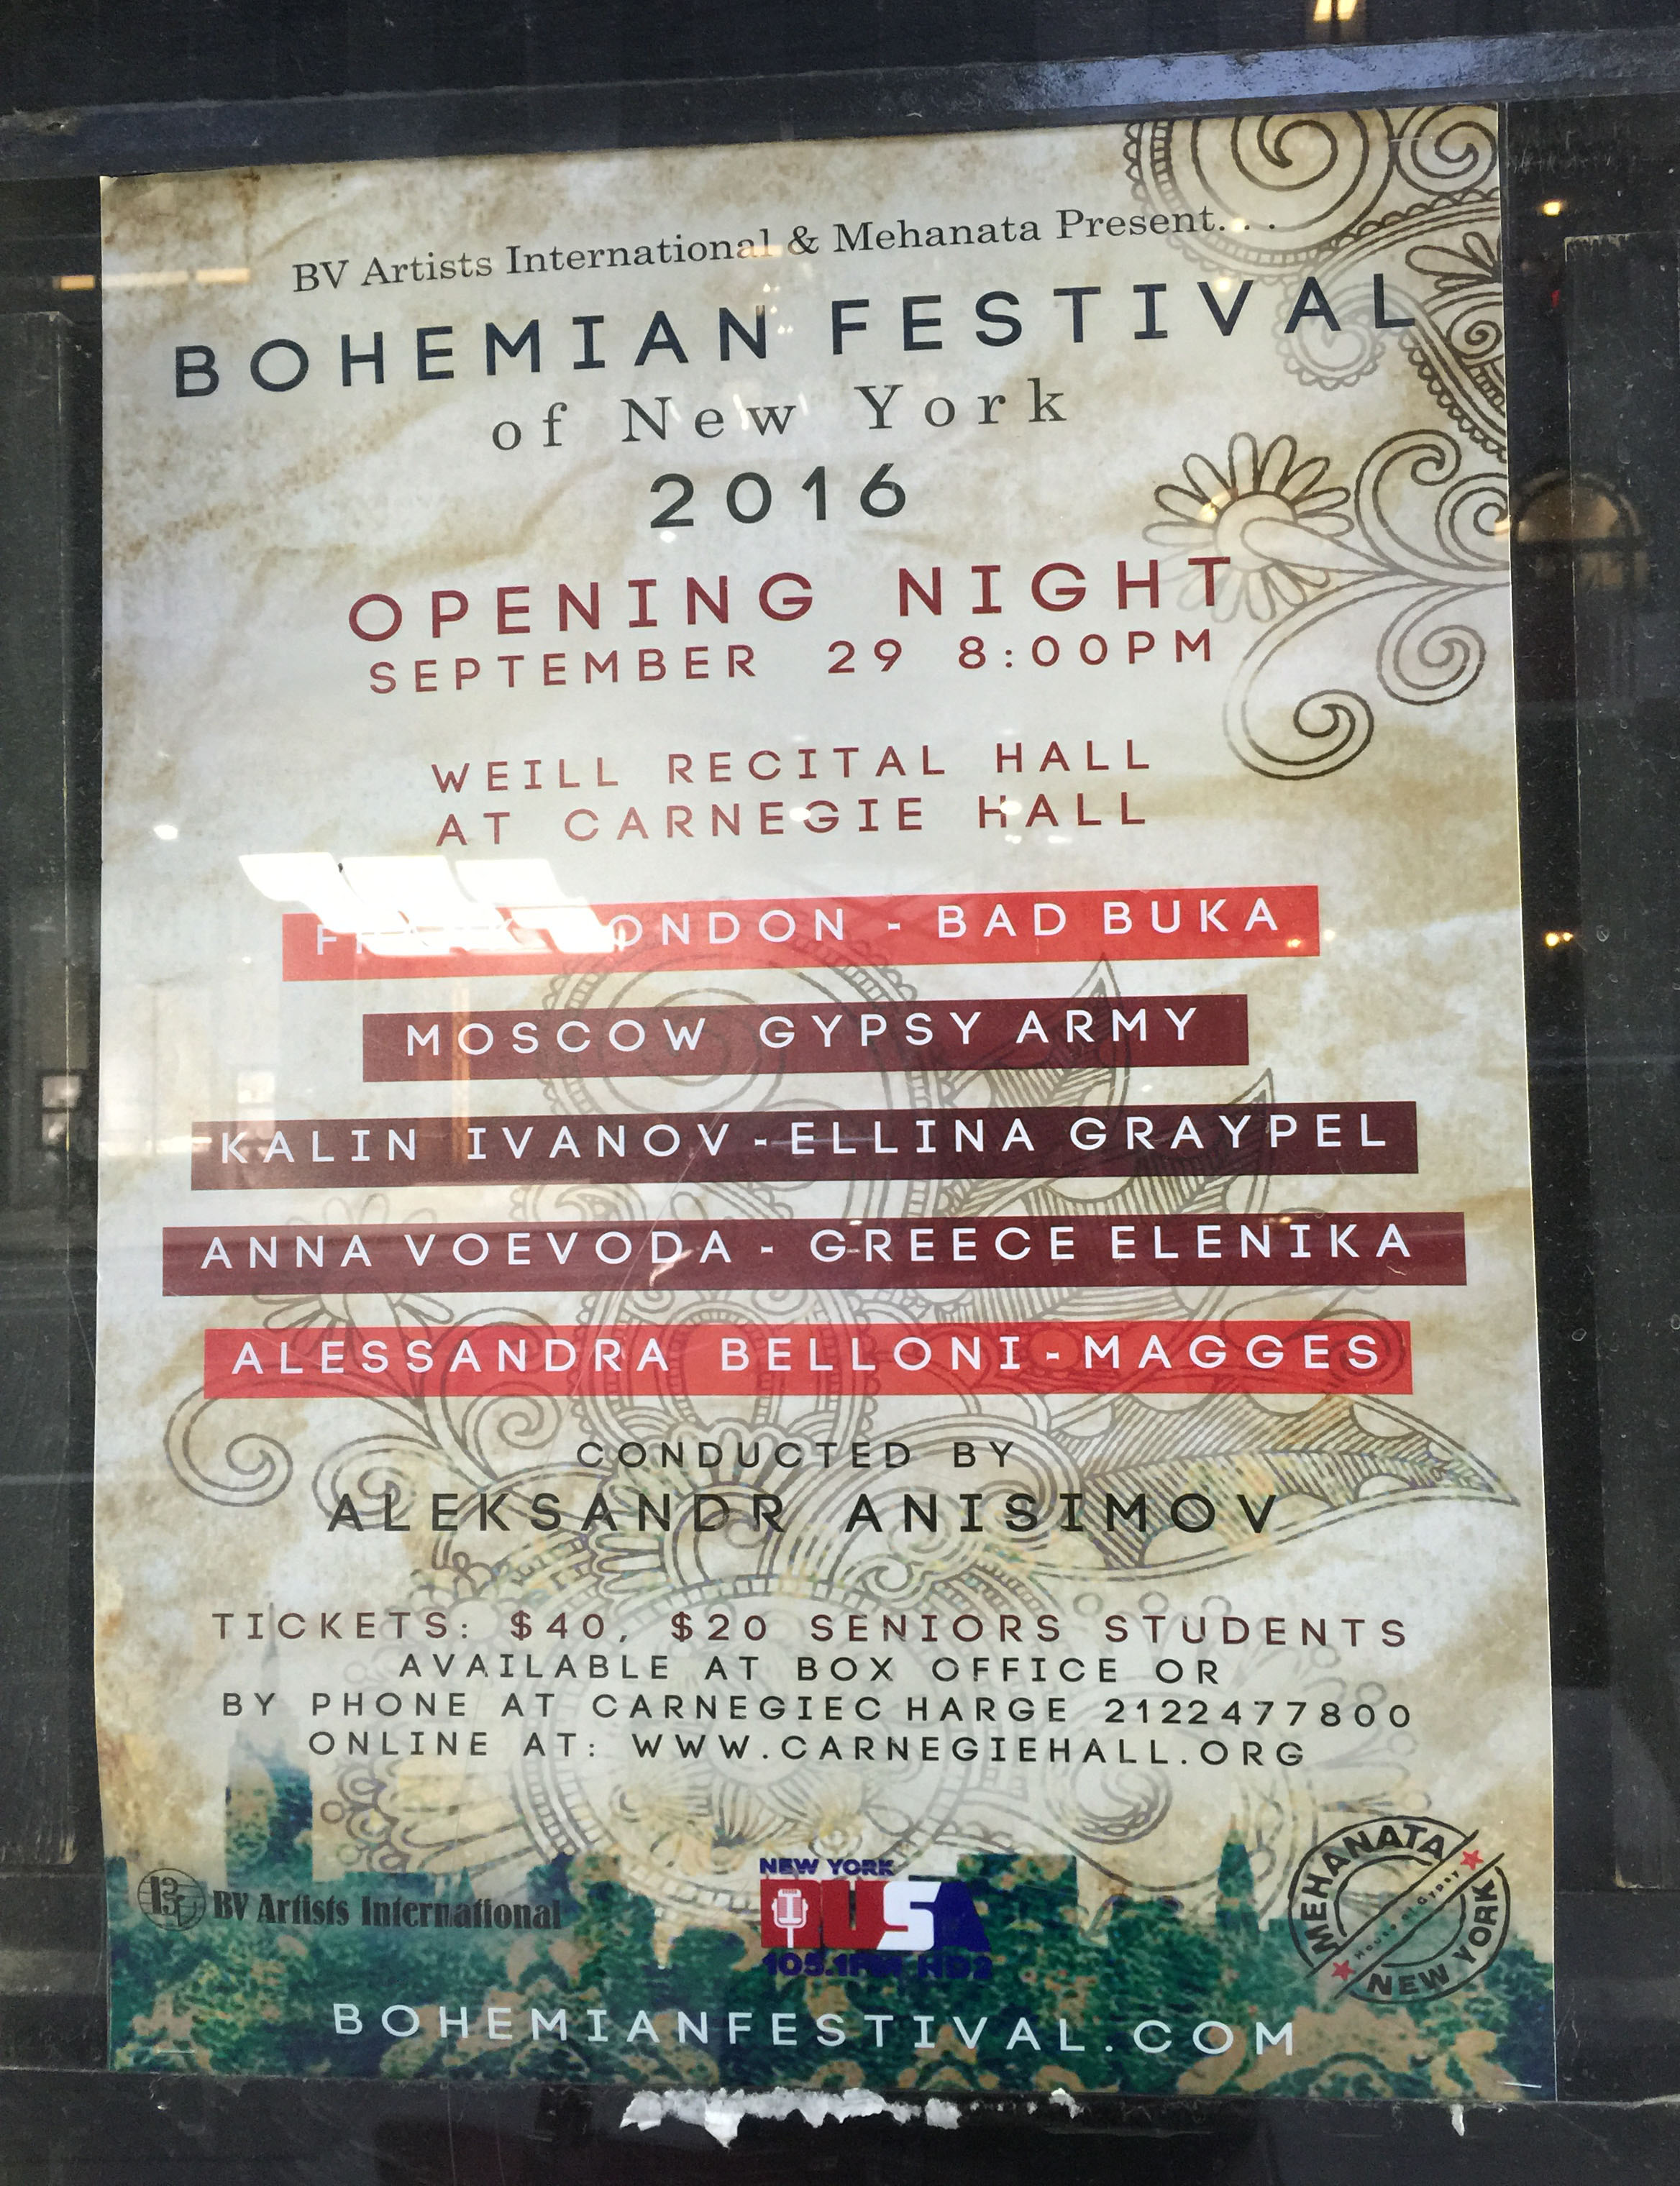 Program of the Bohemian Festival in Carnegie Hall in New York City